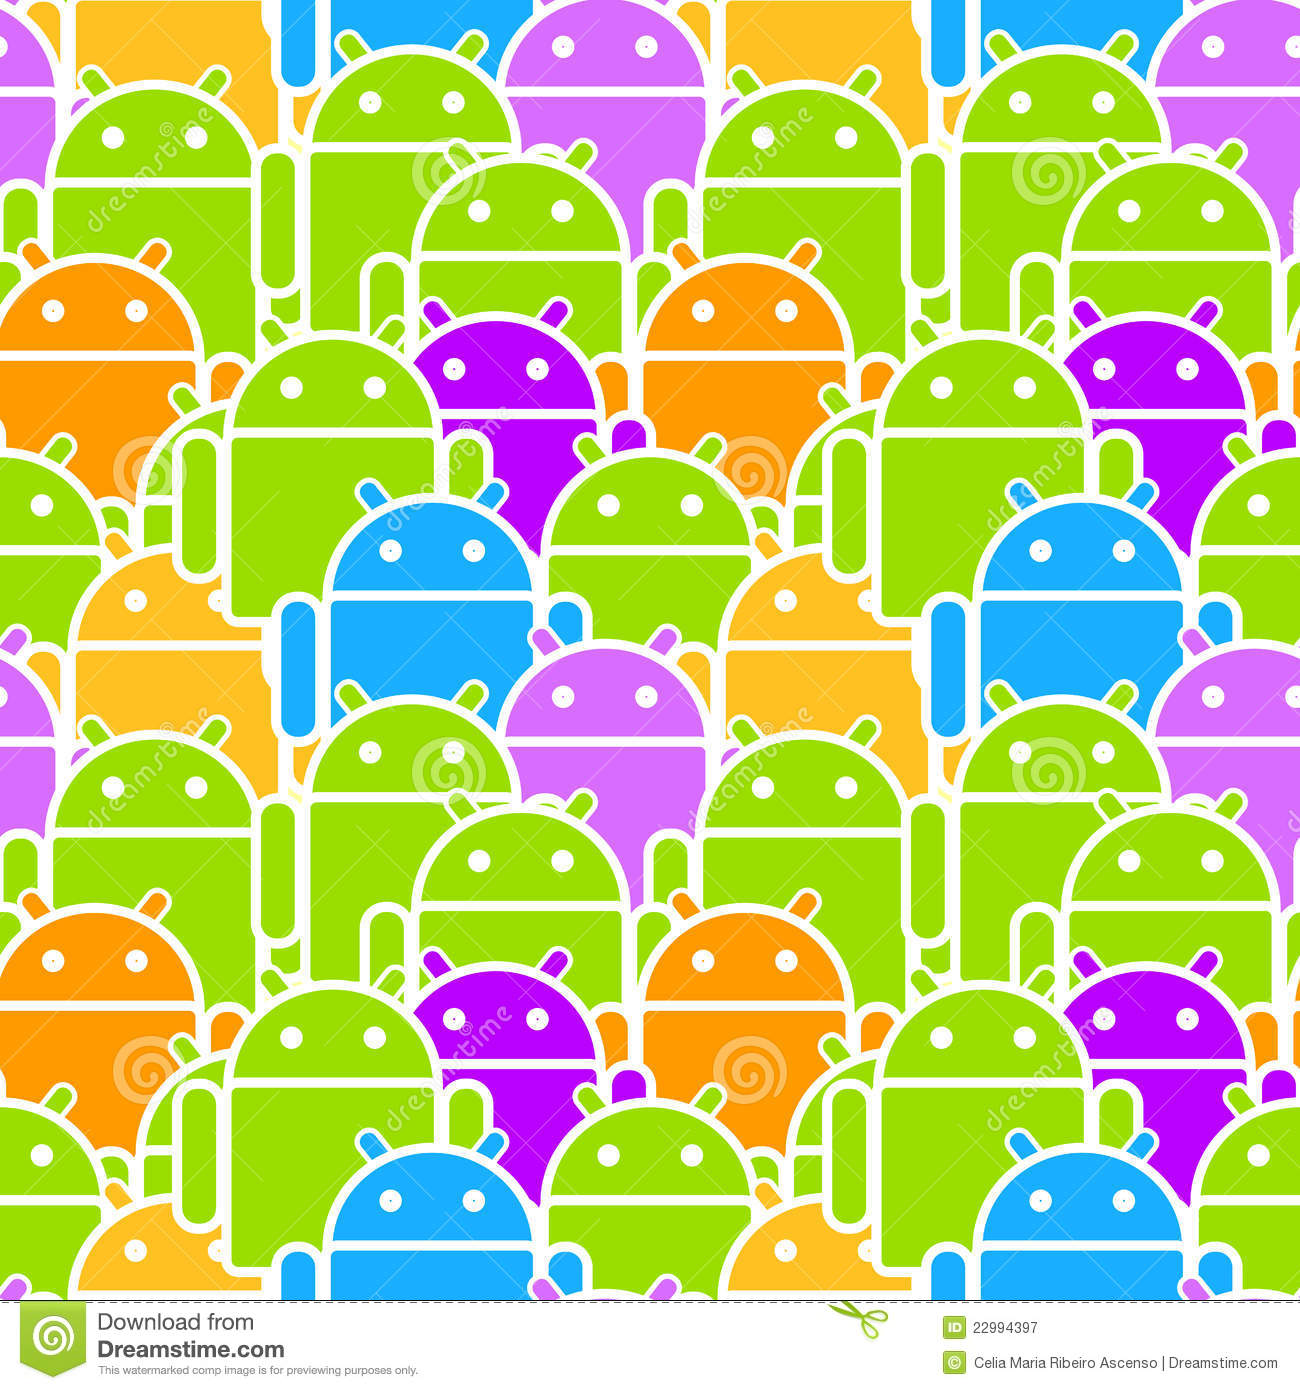 Colorful Android mob or team mobile os seamless background or pattern.